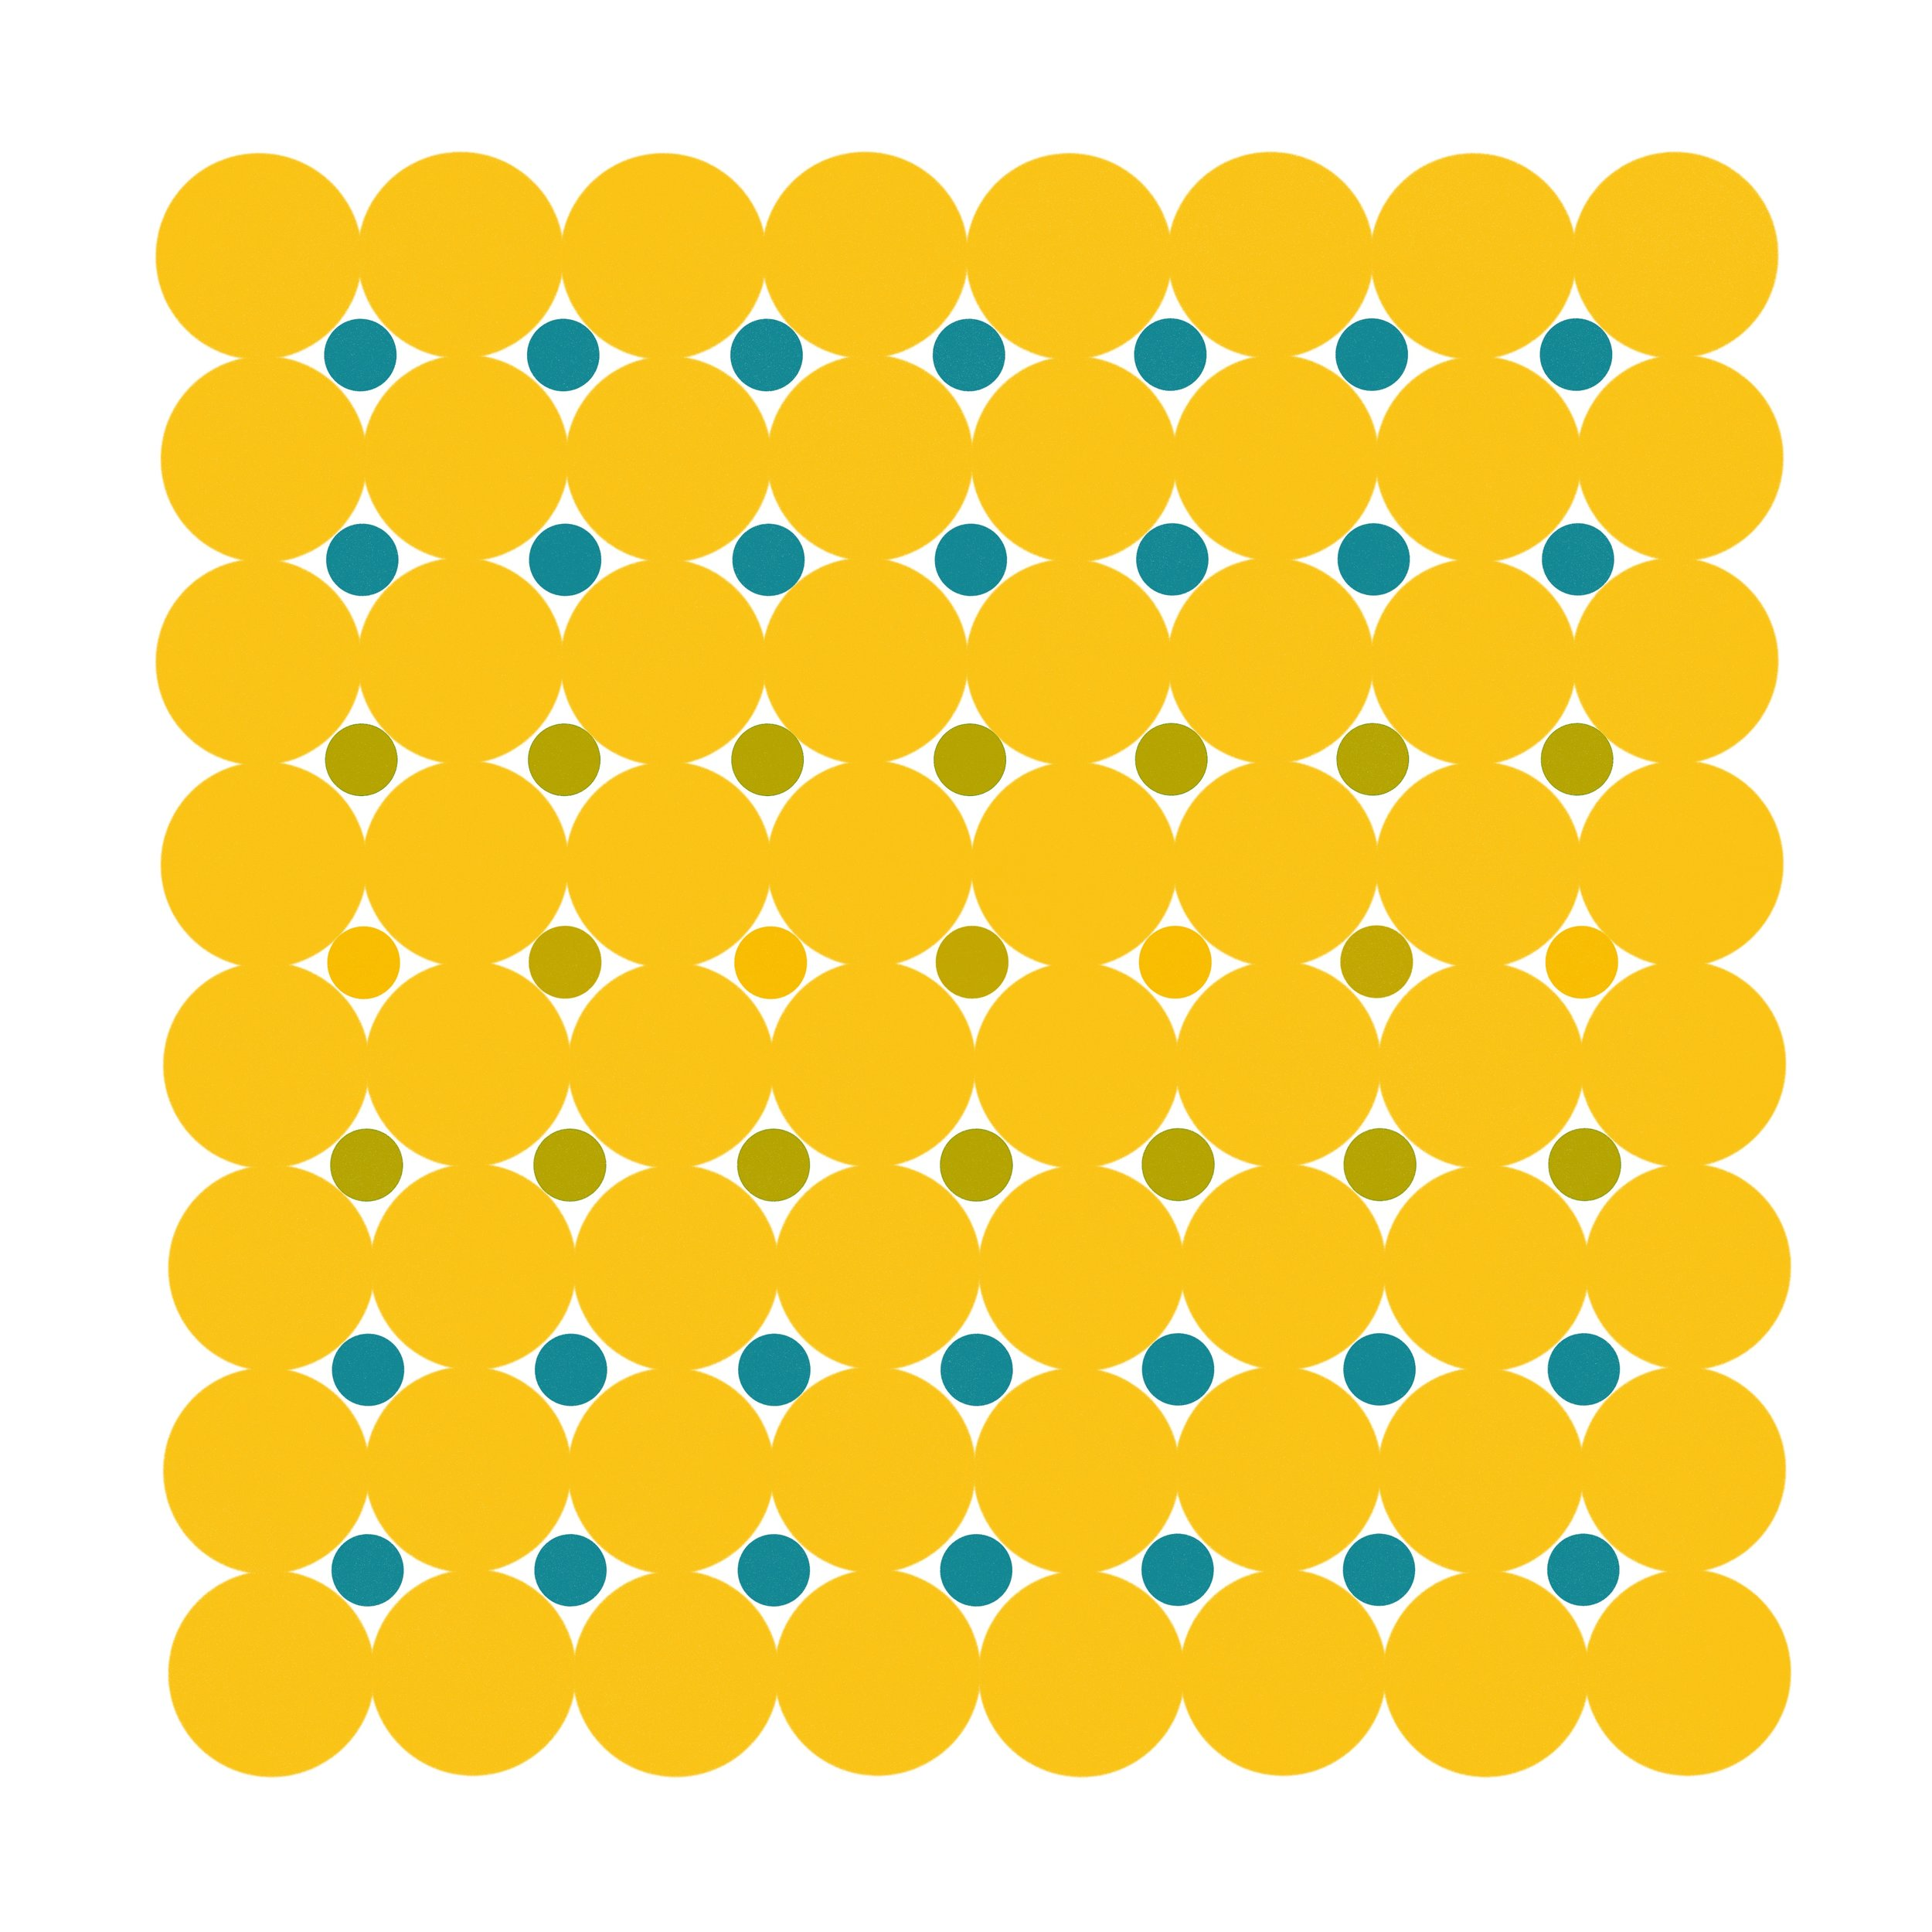 Dot Structure 5 - Gold